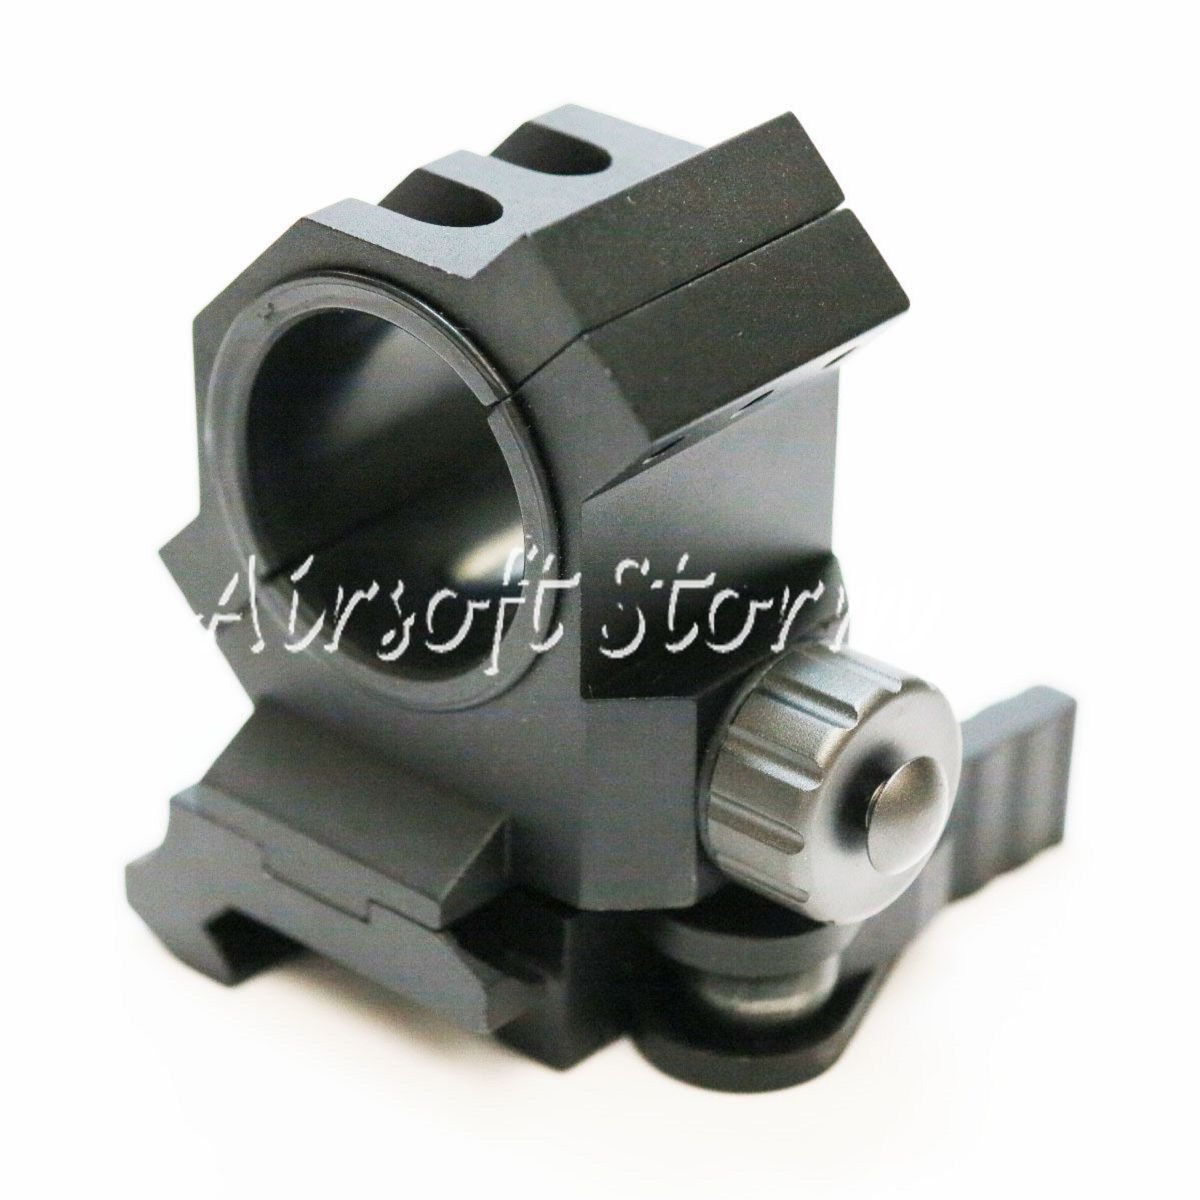 Shooting Sight Gear 25mm/30mm Scope Red Dot Sight QD Lever Mount Black